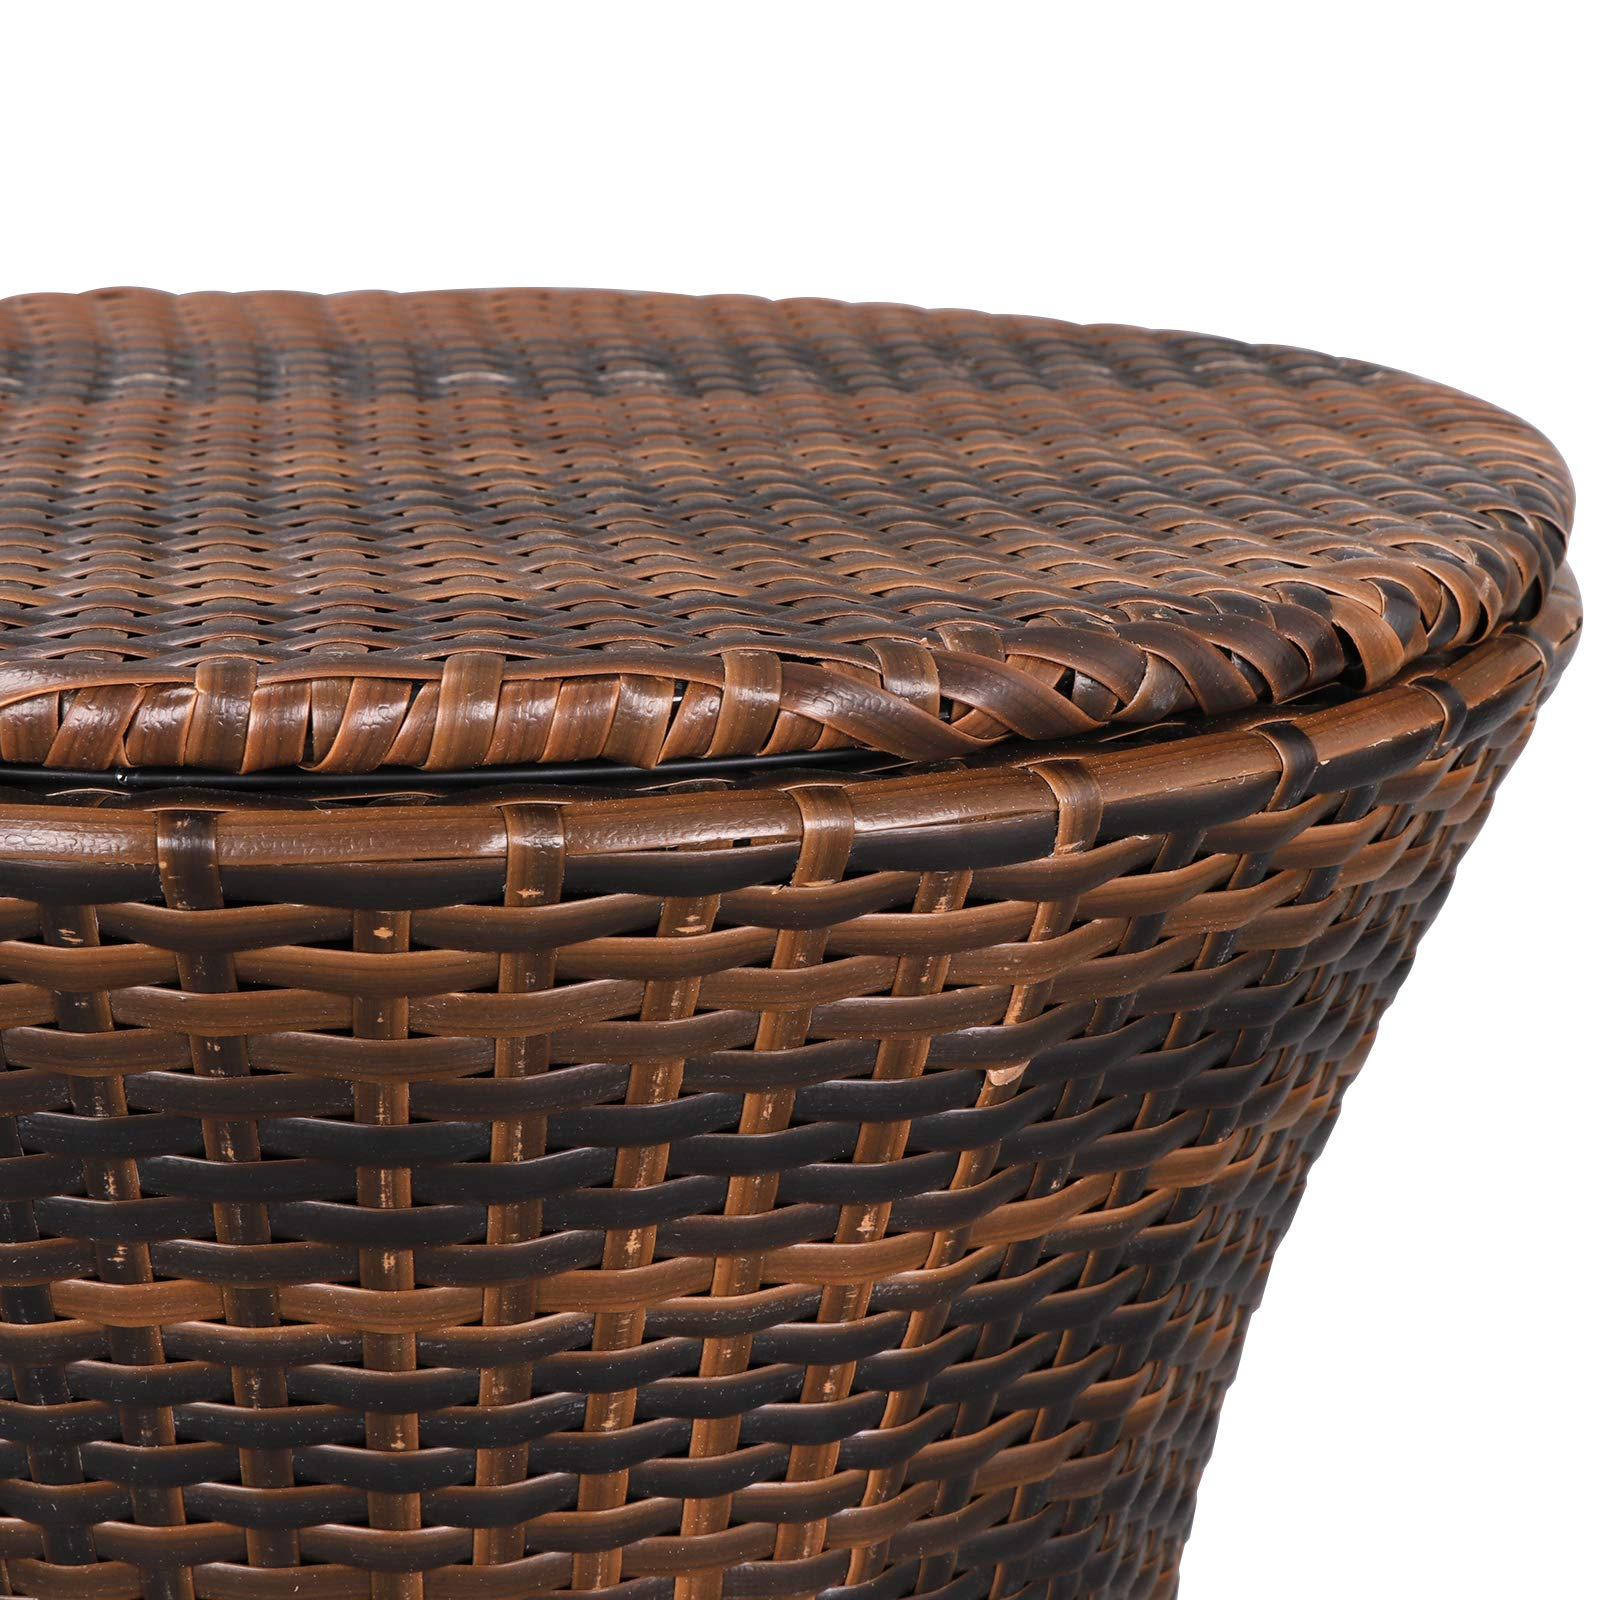 ZENY 5.5 Gallon Cool Bar Rattan Style Patio Pool Cooler Table W/Height Adjustable Top Outdoor Wicker Ice Bucket Cocktail Coffee Table for Party Deck Pool Use, Brown by ZENY (Image #6)